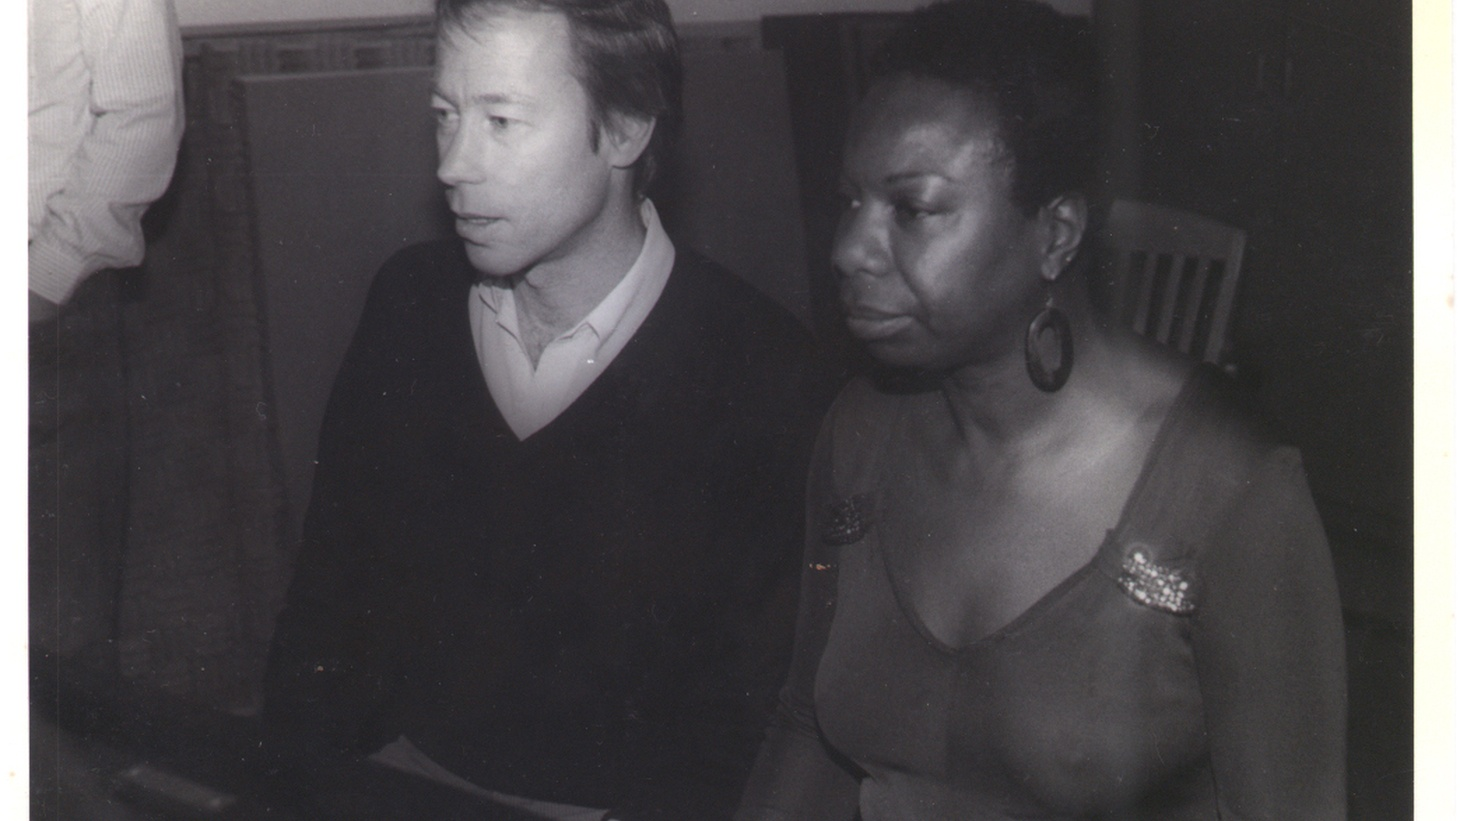 Tom Schnabel presents rare interviews and live performances by renowned chanteuse and activist Nina Simone, who passed away in France on April 21, 2003.